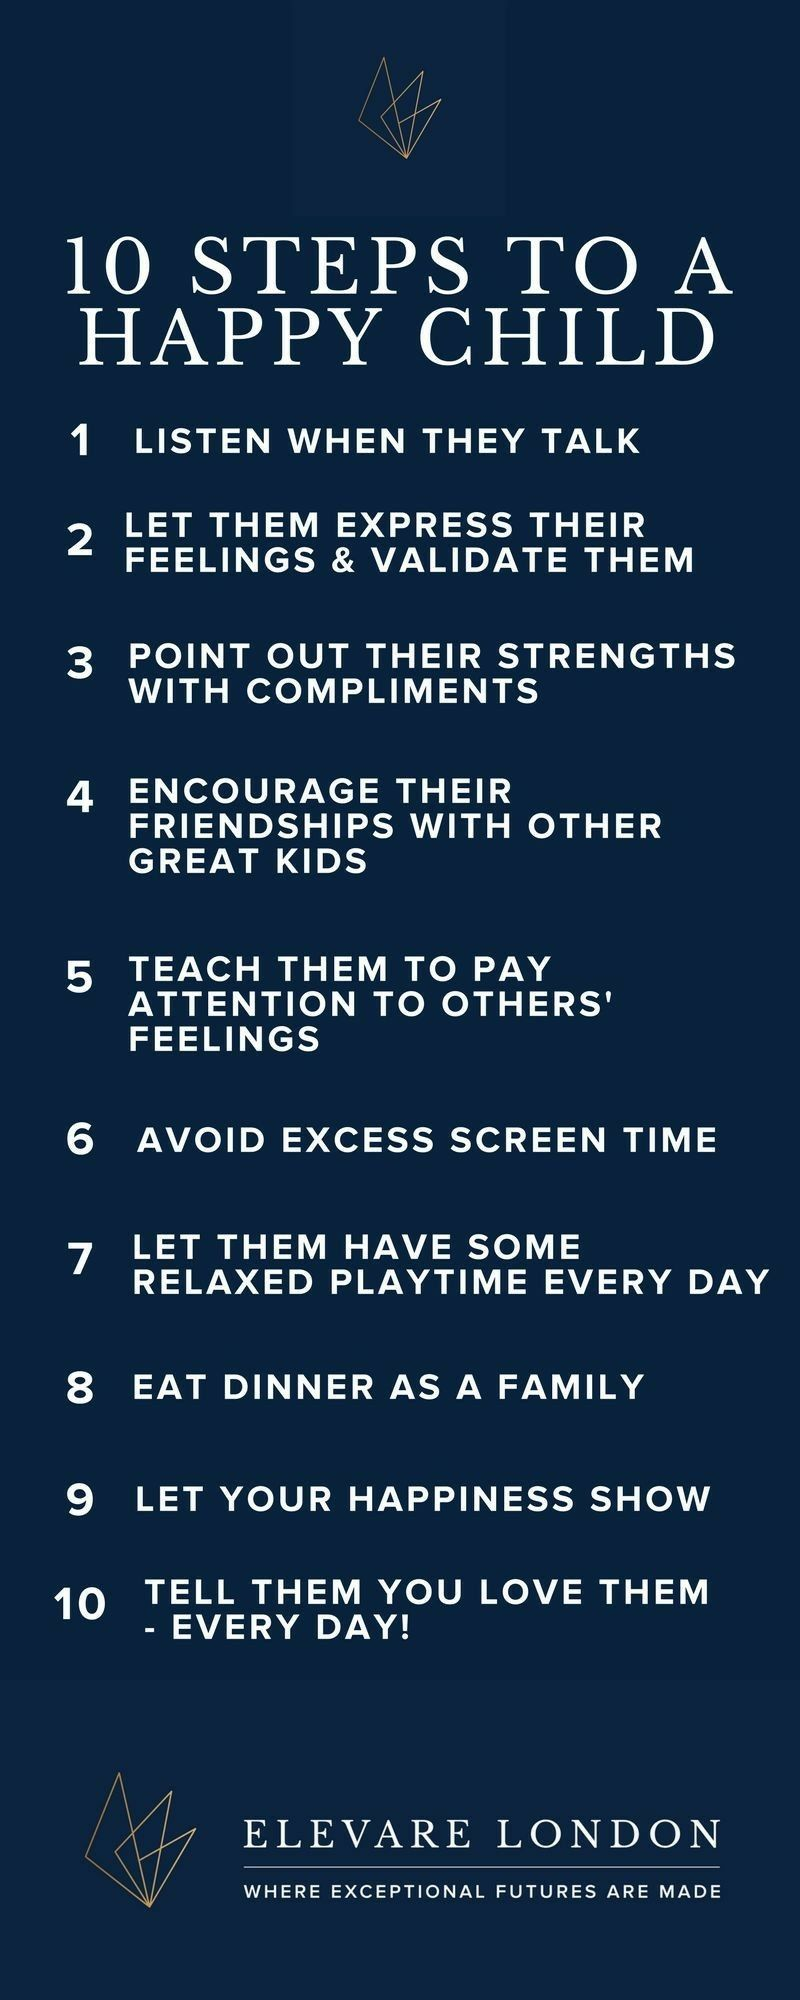 Mothers Quotes 10 Steps To A Positive Childhood#mom #quotes #daughter #truths .